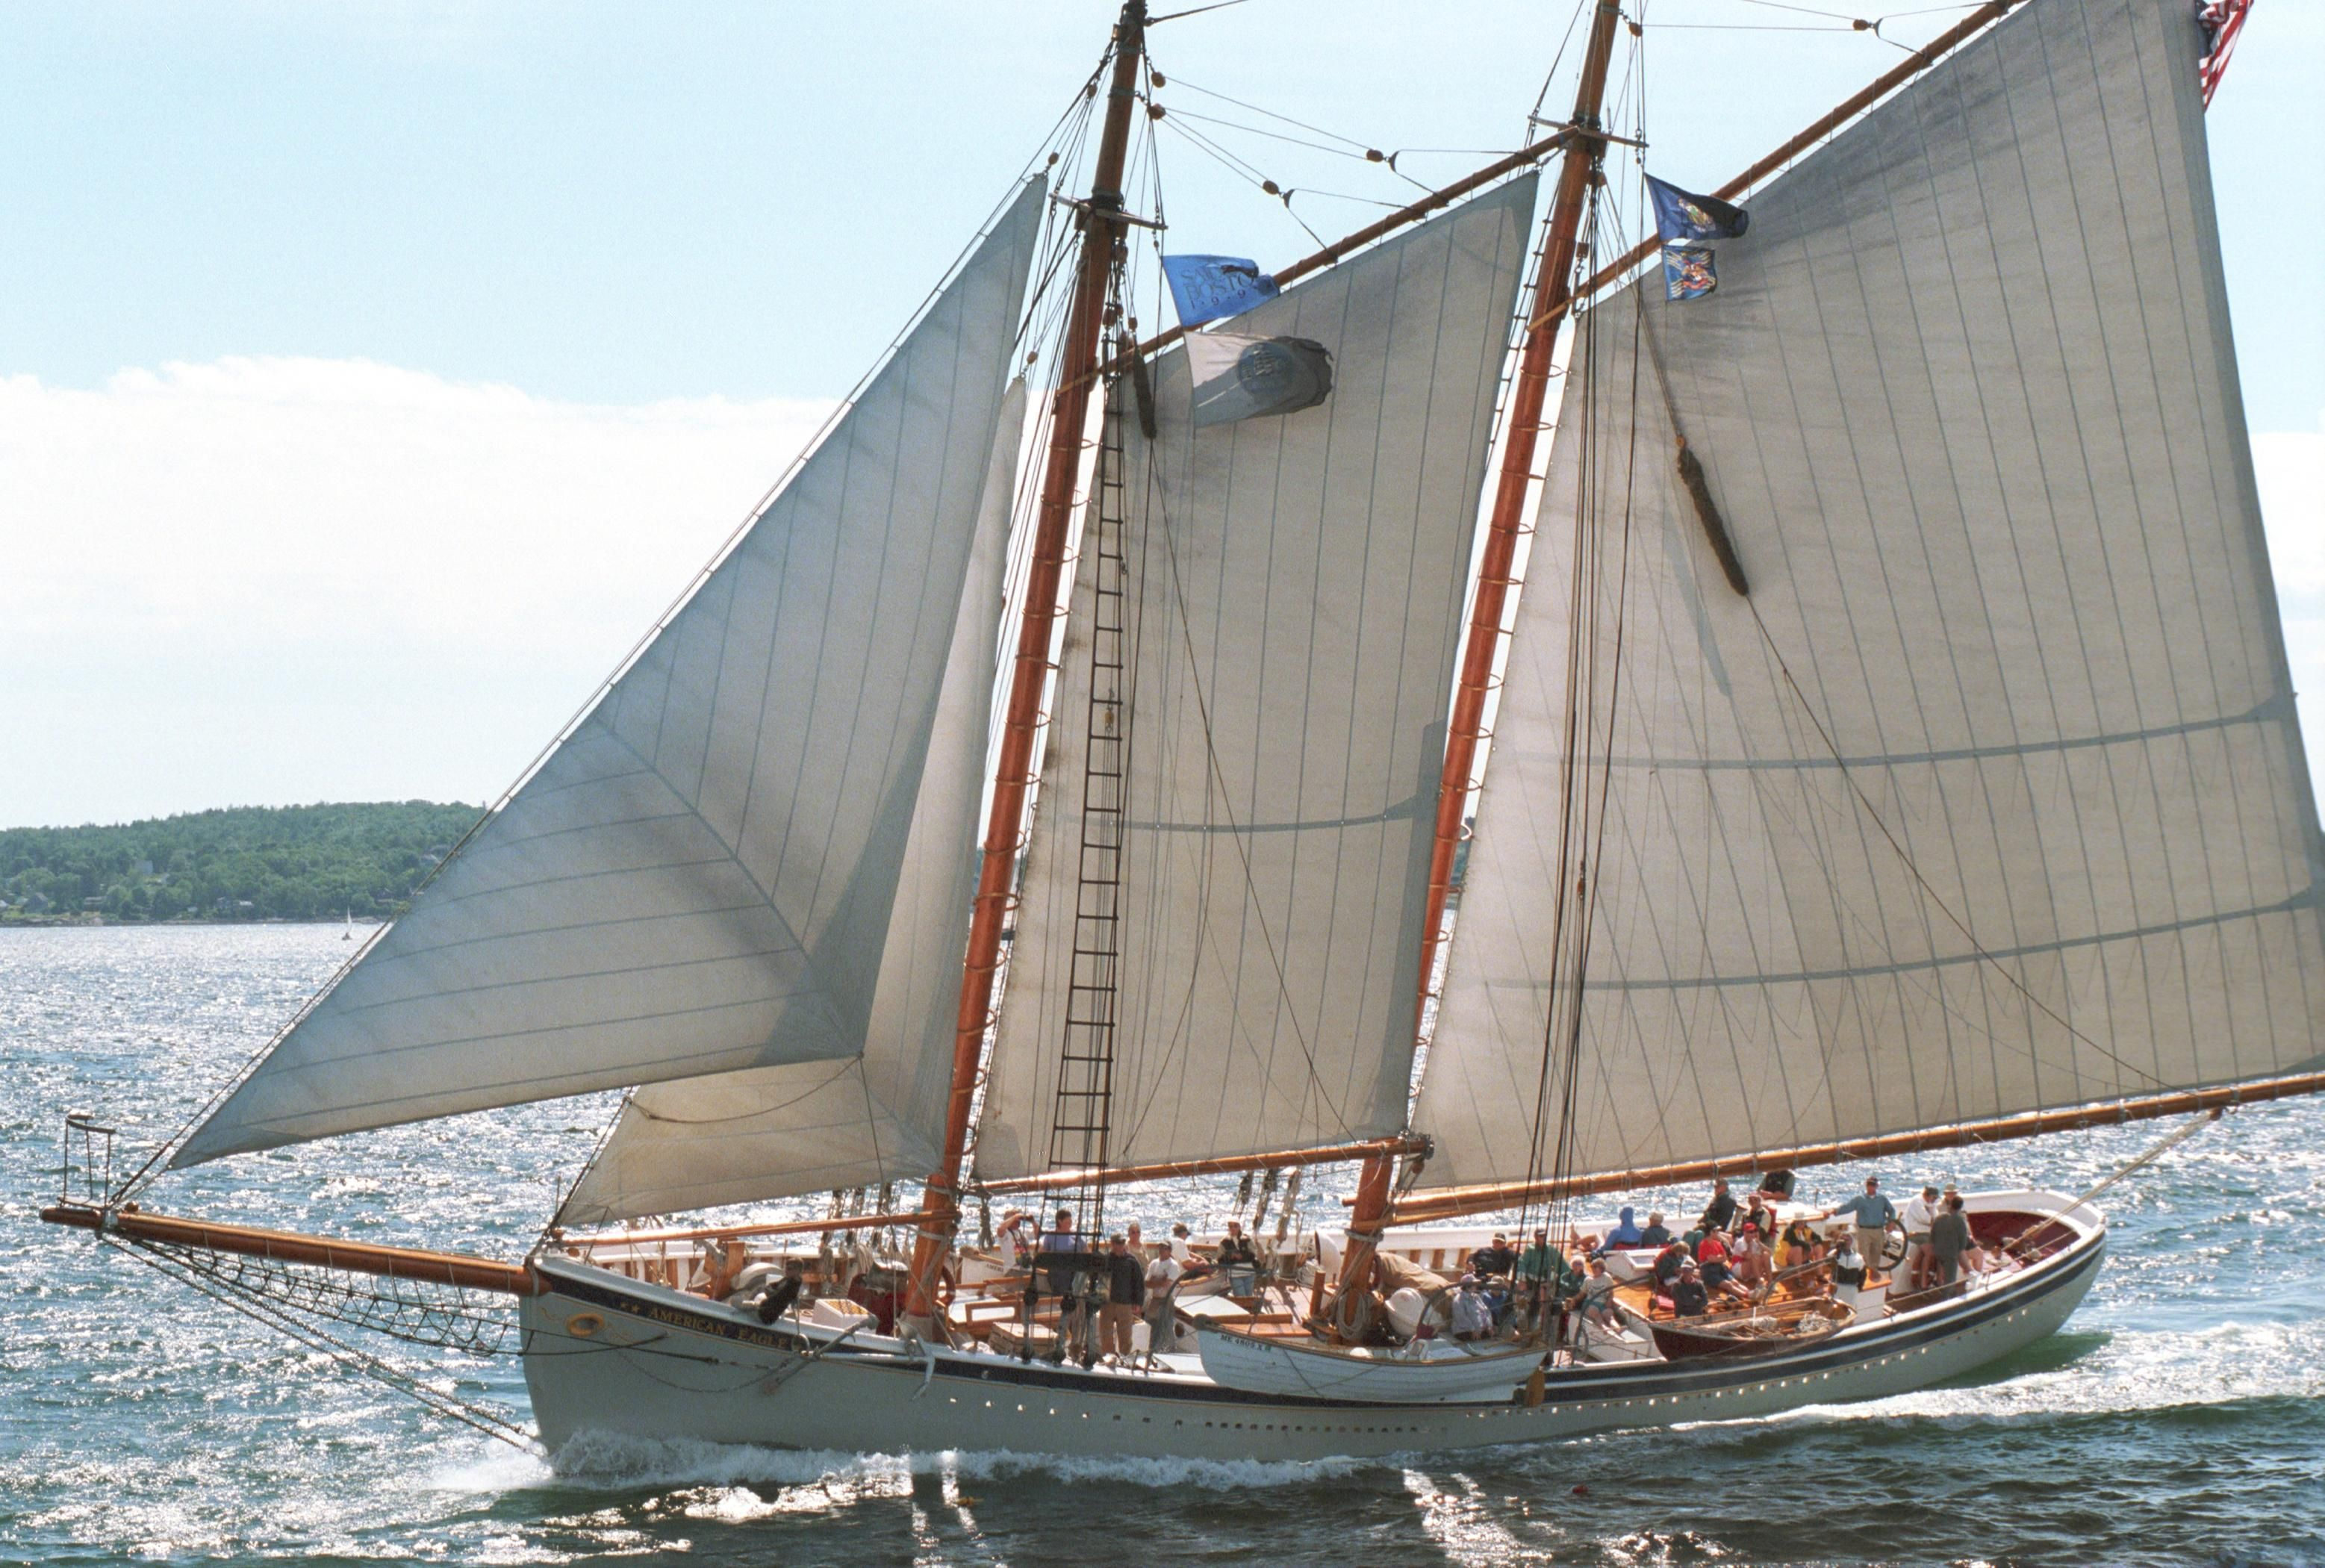 1930 custom gloucester fishing schooner sail boat for sale for Fishing boat dealers near me